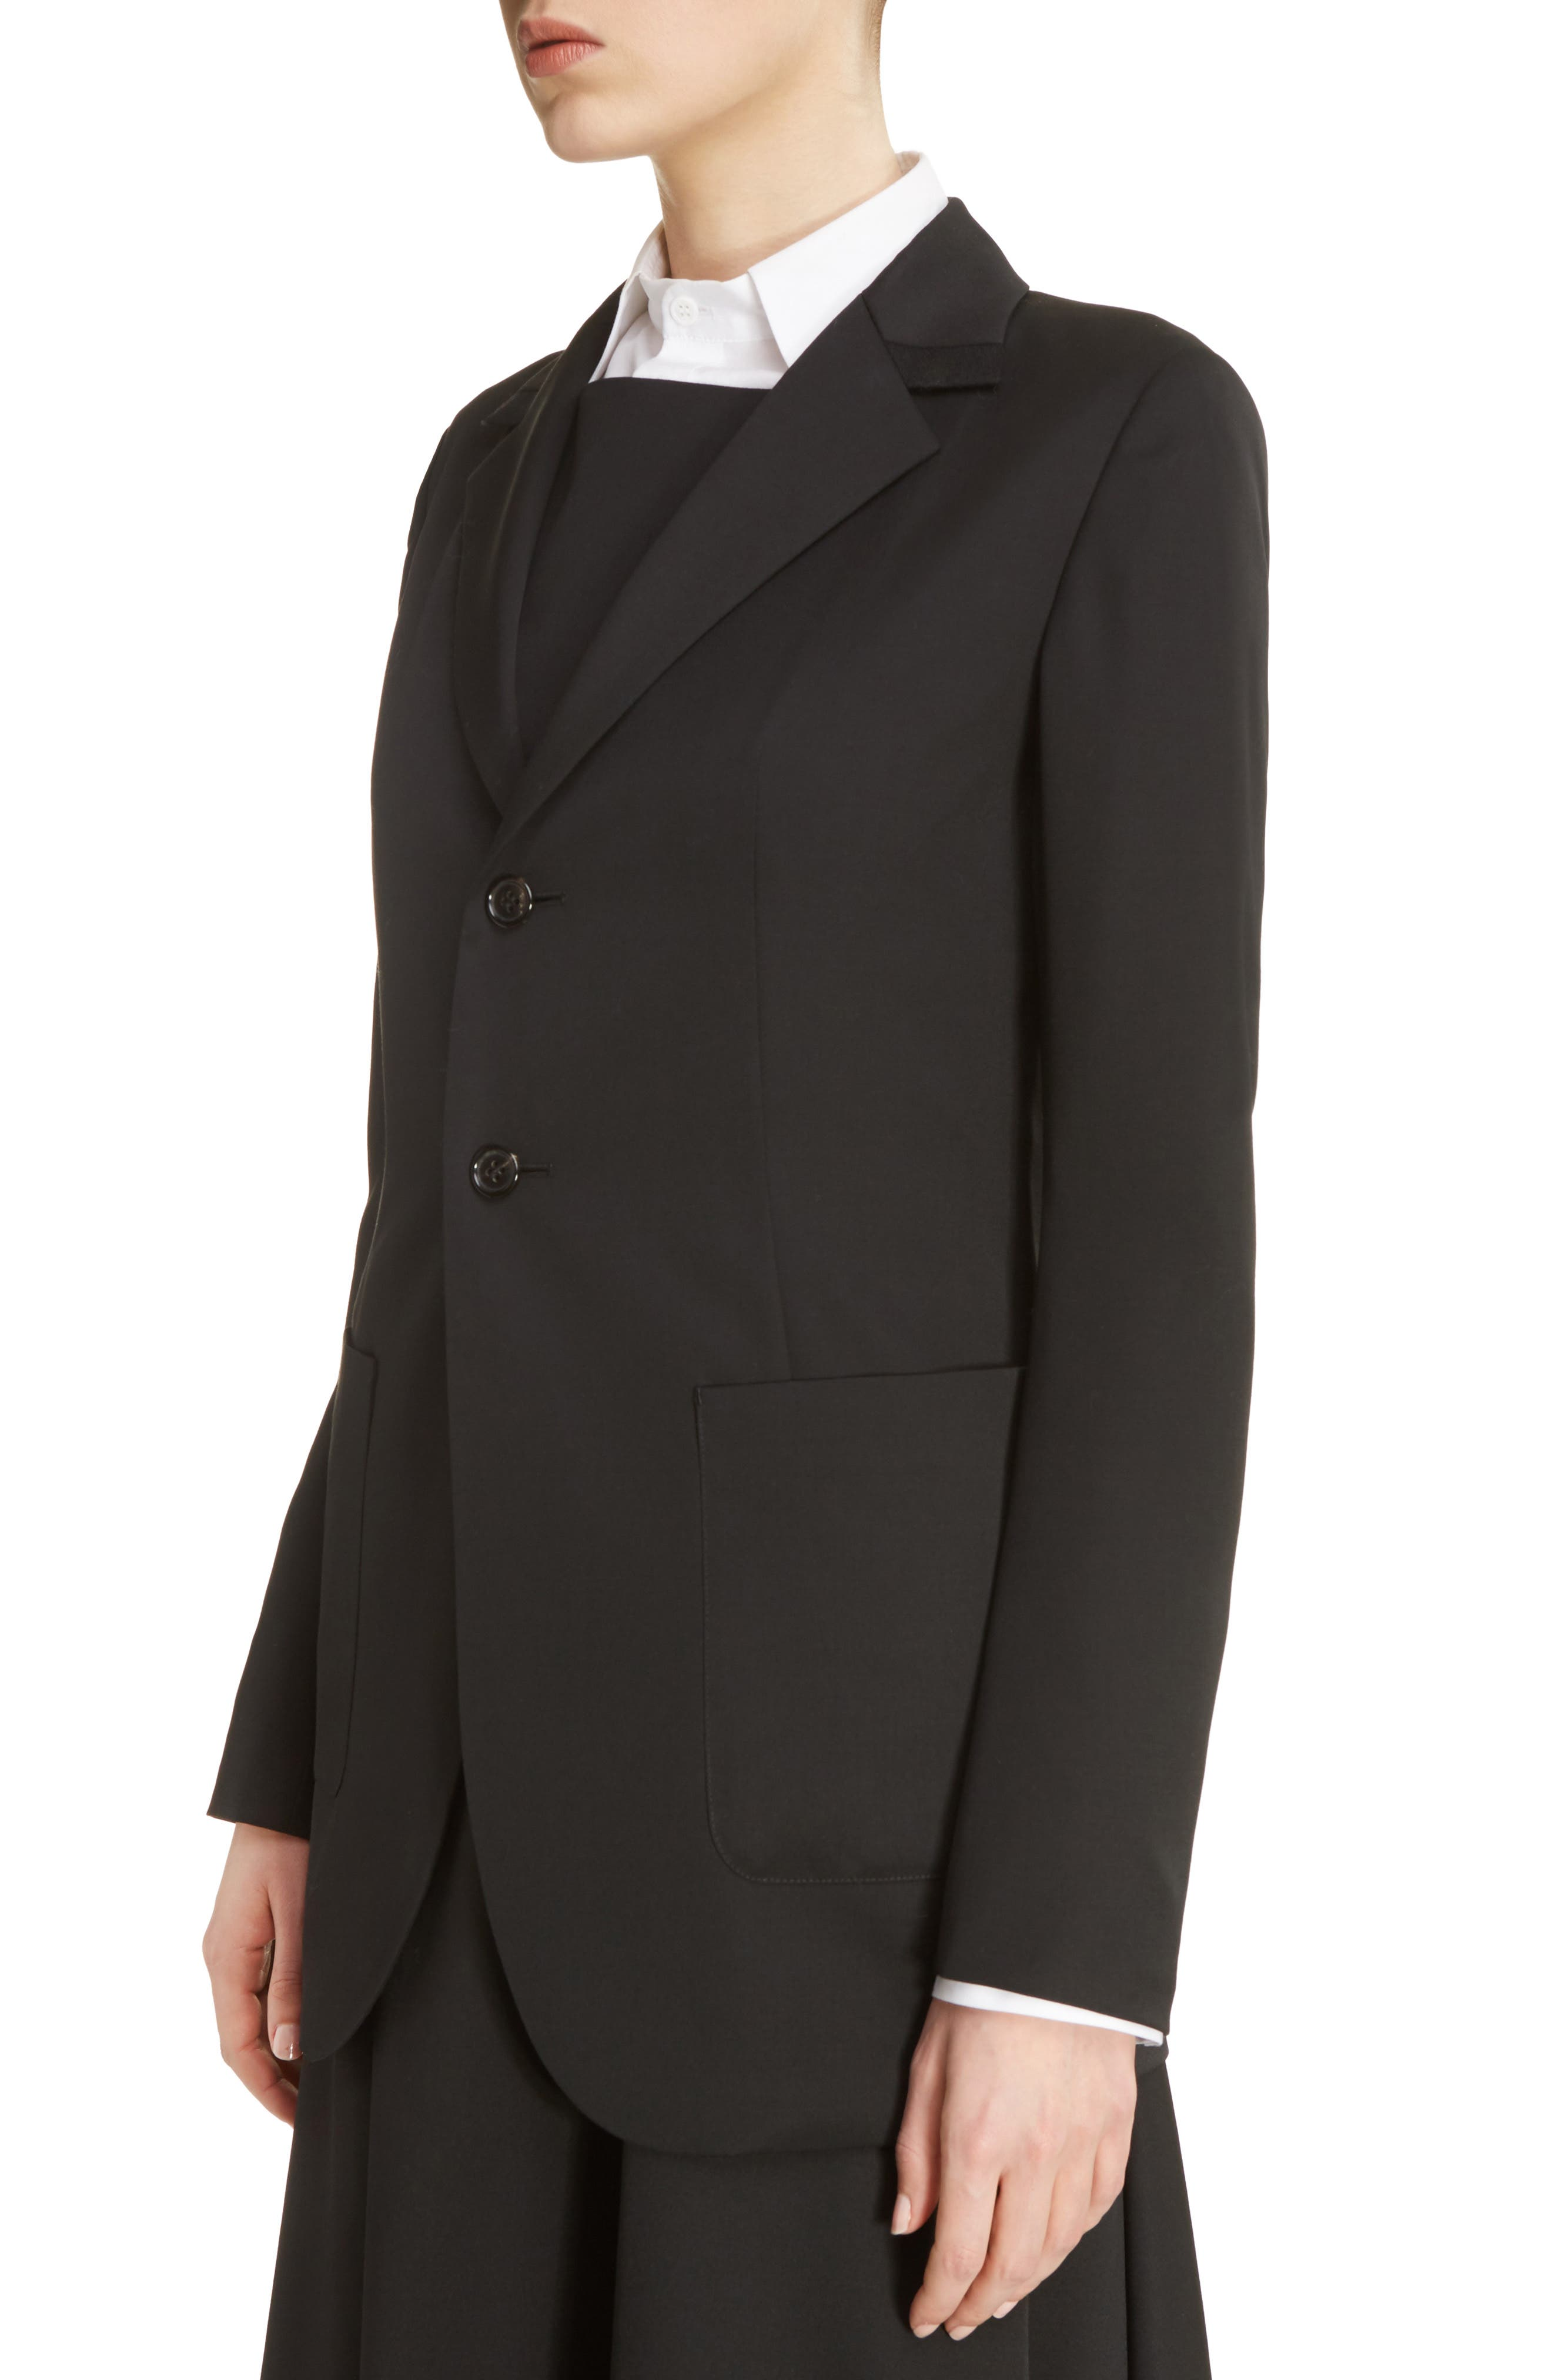 U-Out P Tailored Wool Jacket,                             Alternate thumbnail 4, color,                             001